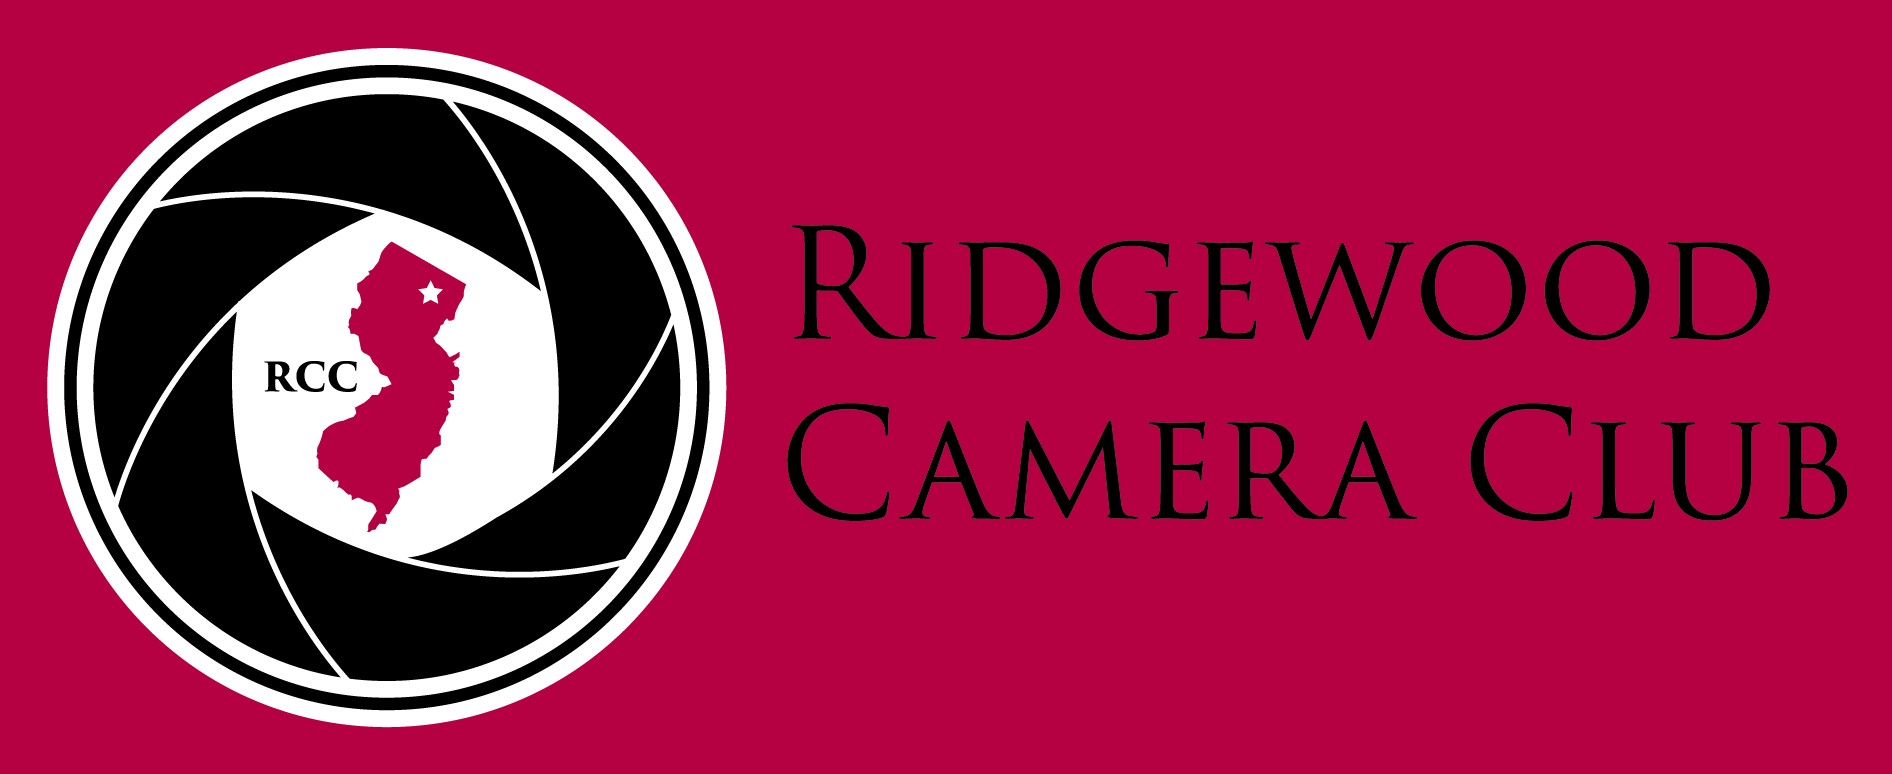 RIDGEWOOD INTERNATIONAL 2021 EXHIBITION OF PHOTOGRAPHY